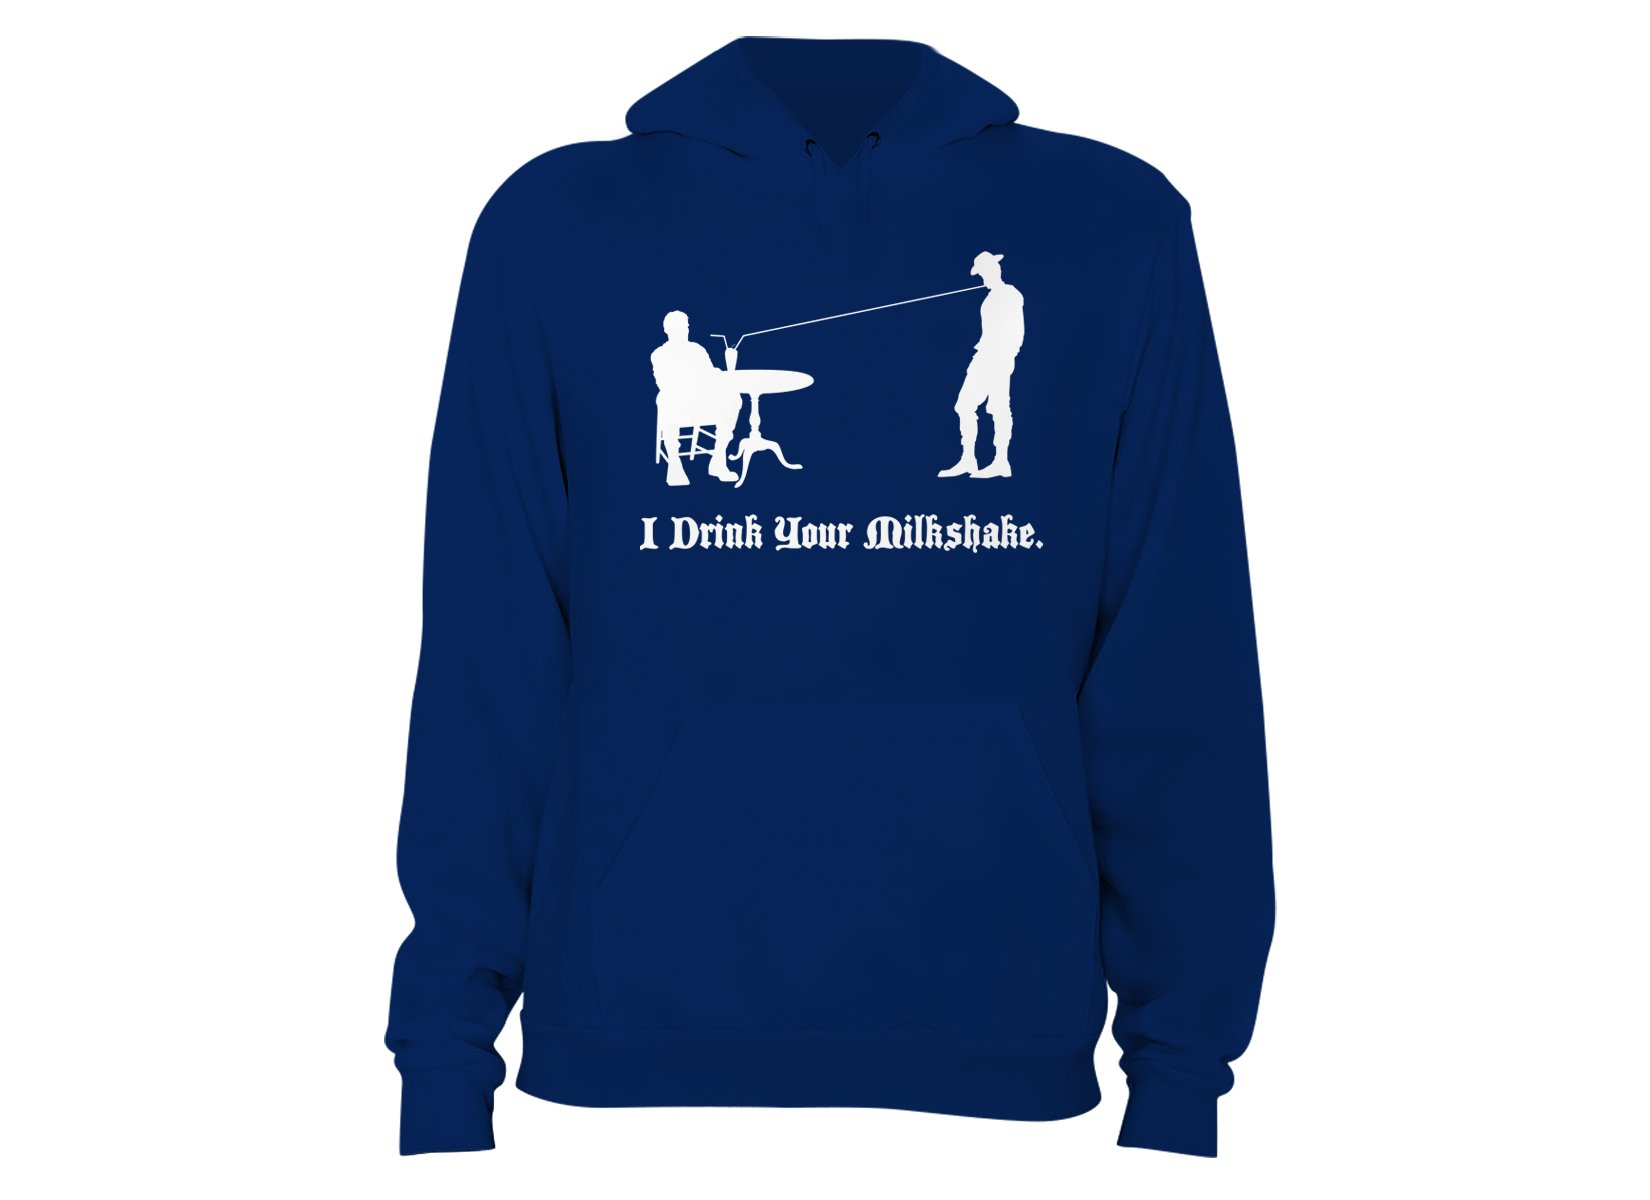 I Drink Your Milkshake on Hoodie